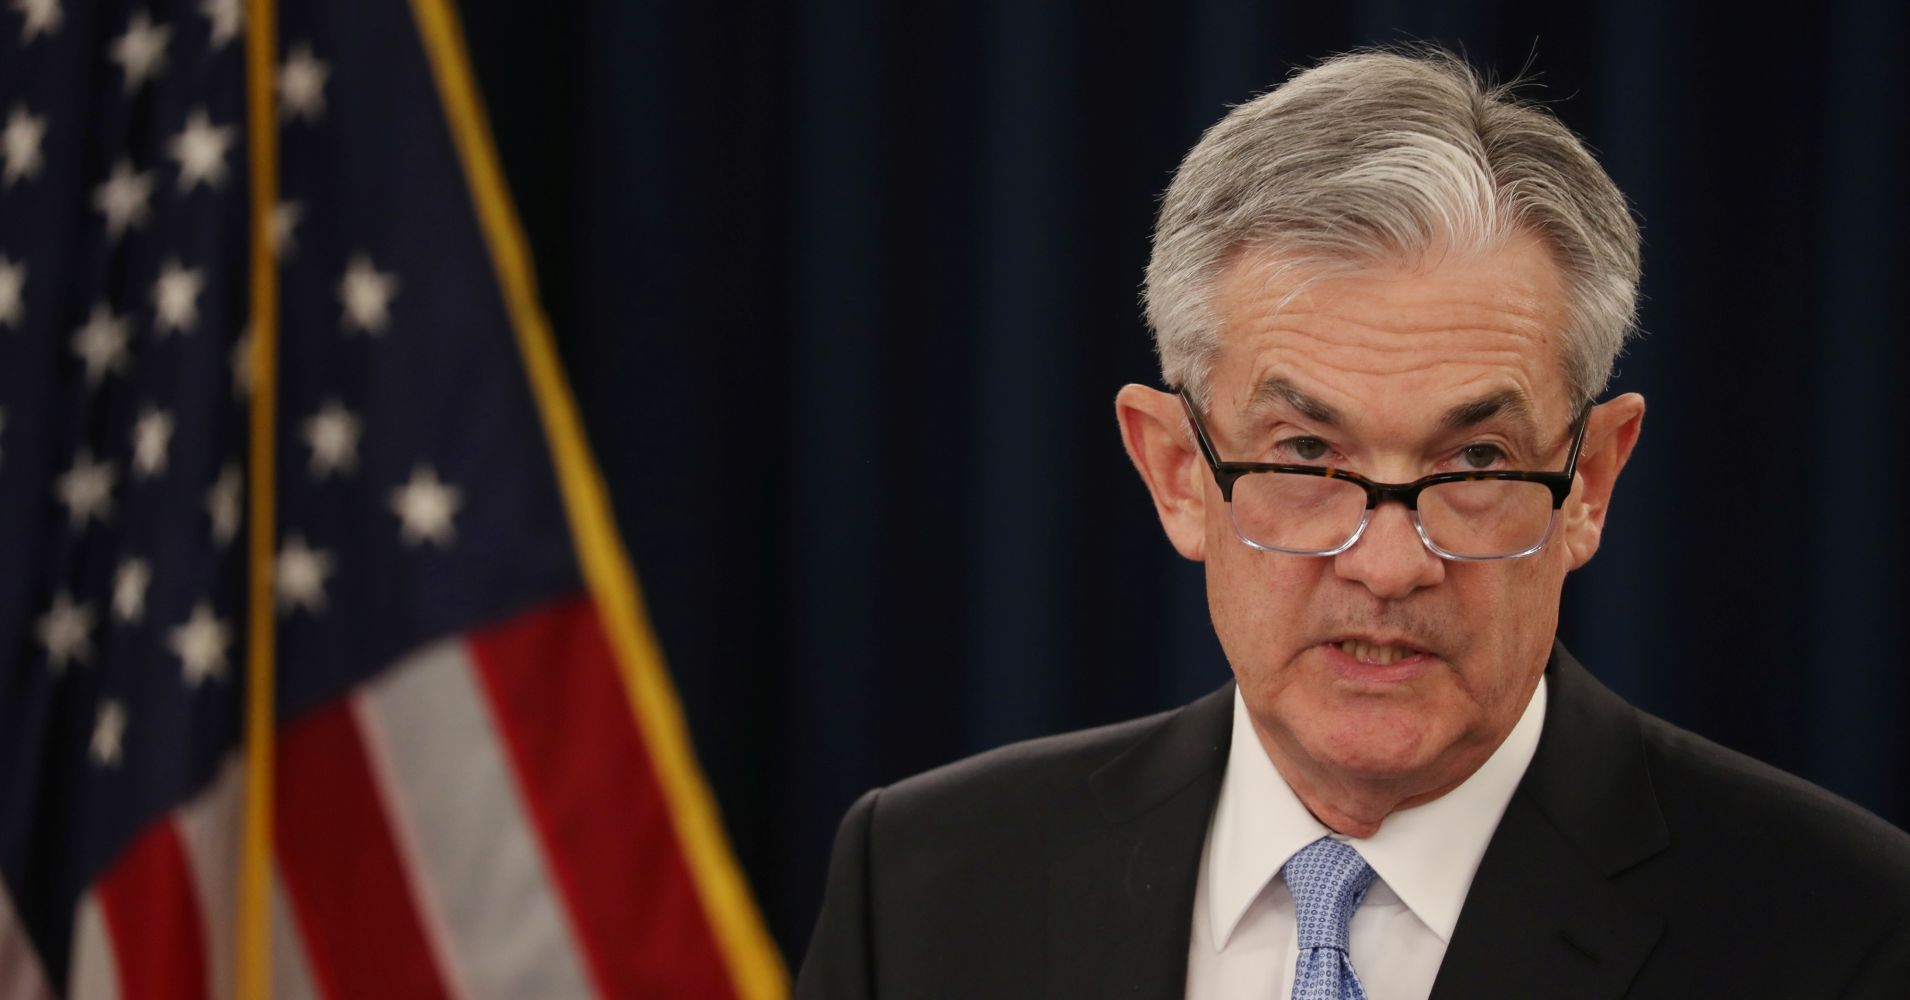 Federal Reserve Chairman Jerome Powell holds a news conference following the two-day Federal Open Market Committee (FOMC) policy meeting in Washington, U.S., March 20, 2019.